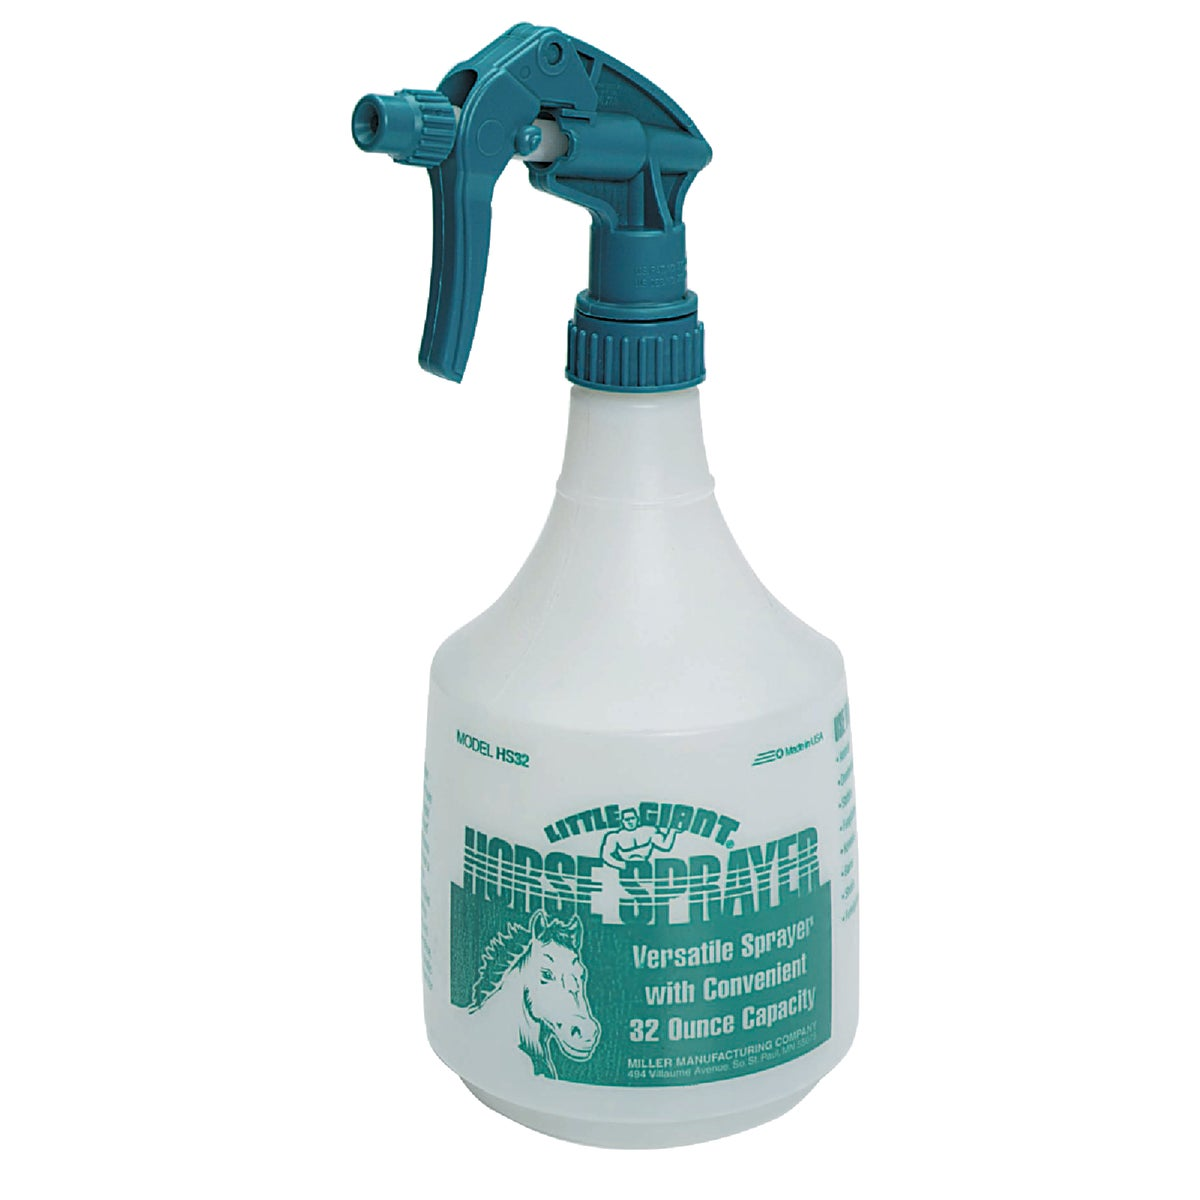 TEAL HORSE SPRAYER - PS32TEAL by Miller Manufacturing